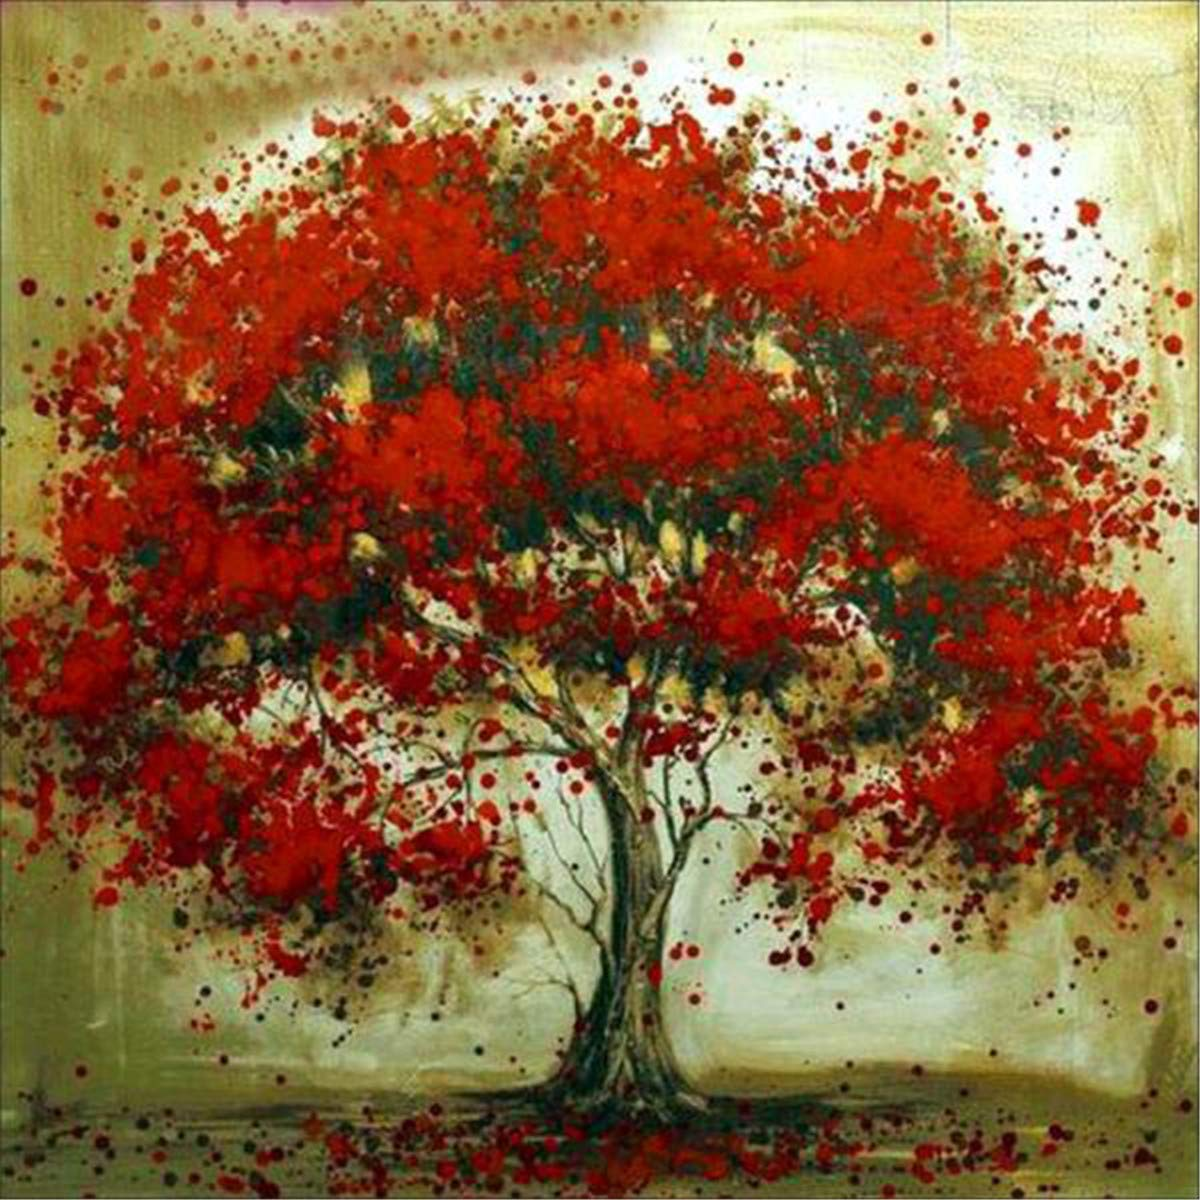 DIY 5D Diamond Painting by Number Kits, Full Drill Crystal Rhinestone Paint with Diamonds Embroidery Pictures Arts Craft for Home Wall Decor - Red Tree 12 x 12 Inch